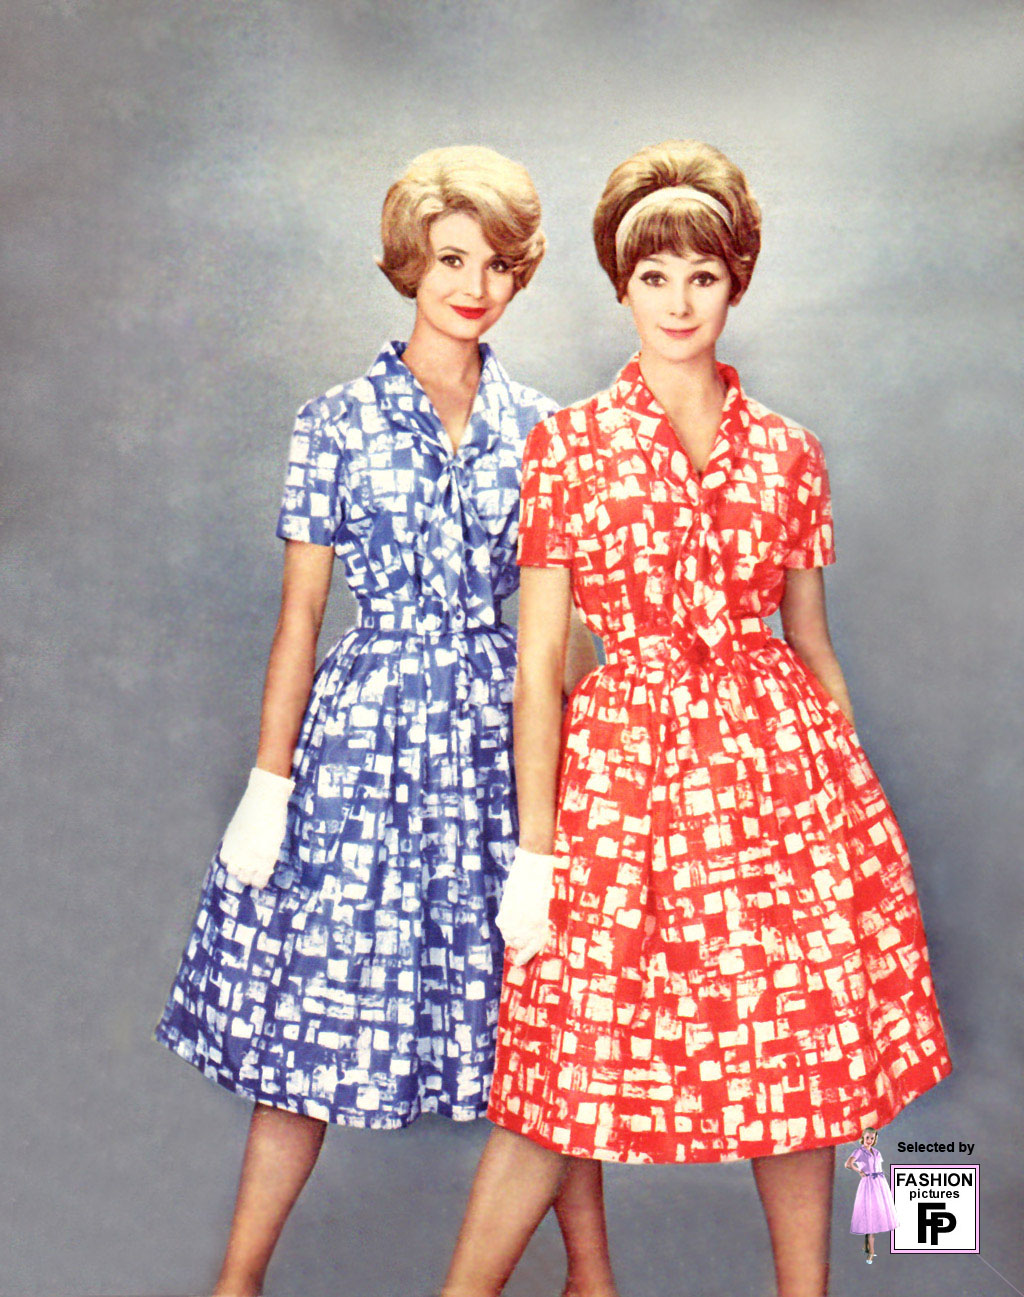 Fashion in the late 1950s 86